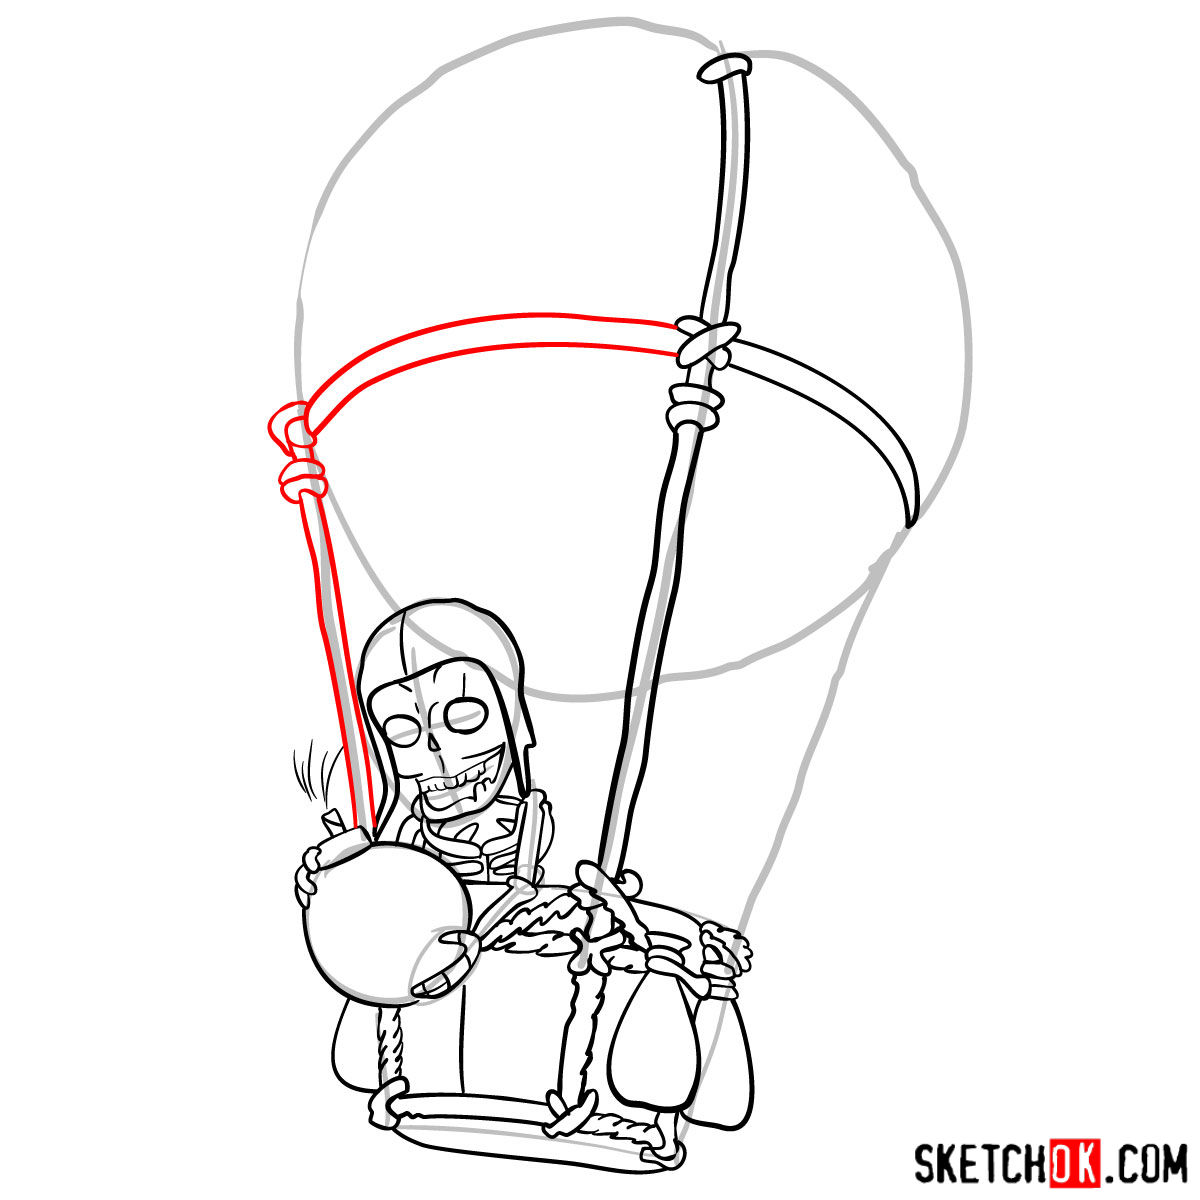 How to draw Balloon with a skeleton - step 08